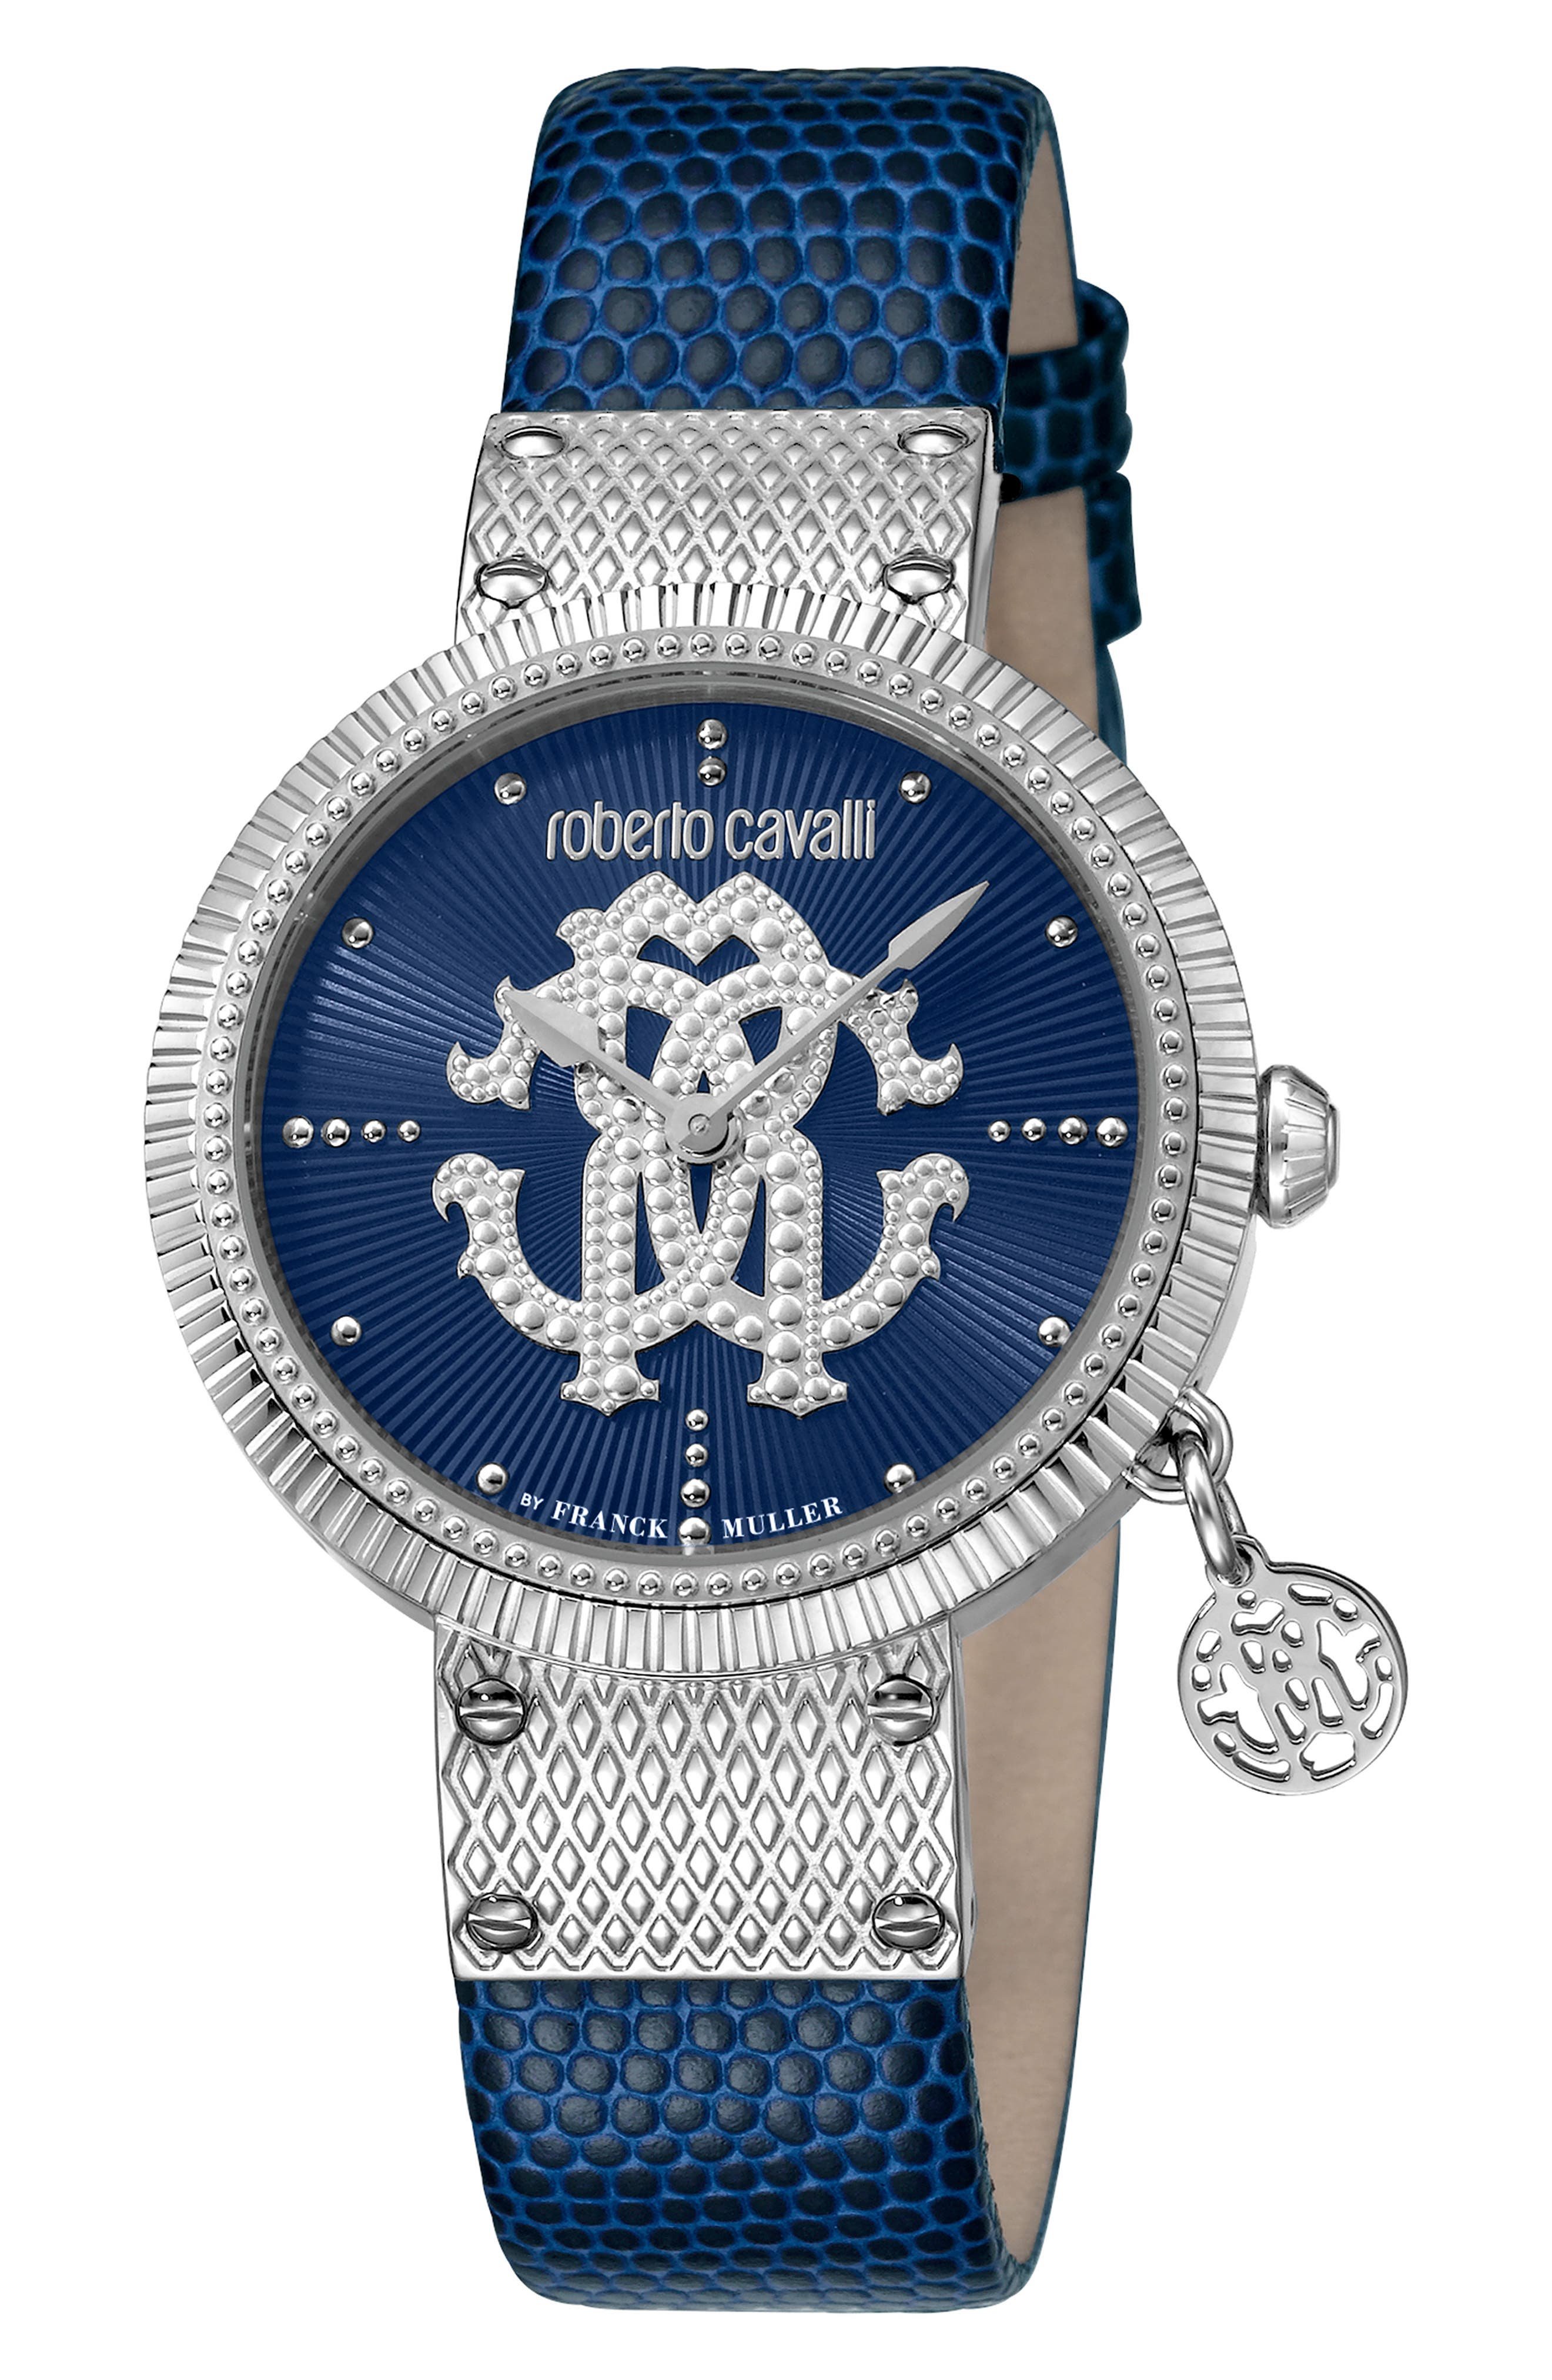 ROBERTO CAVALLI BY FRANCK MULLER Dotted Leather Strap Watch, 34Mm in Blue/ Silver